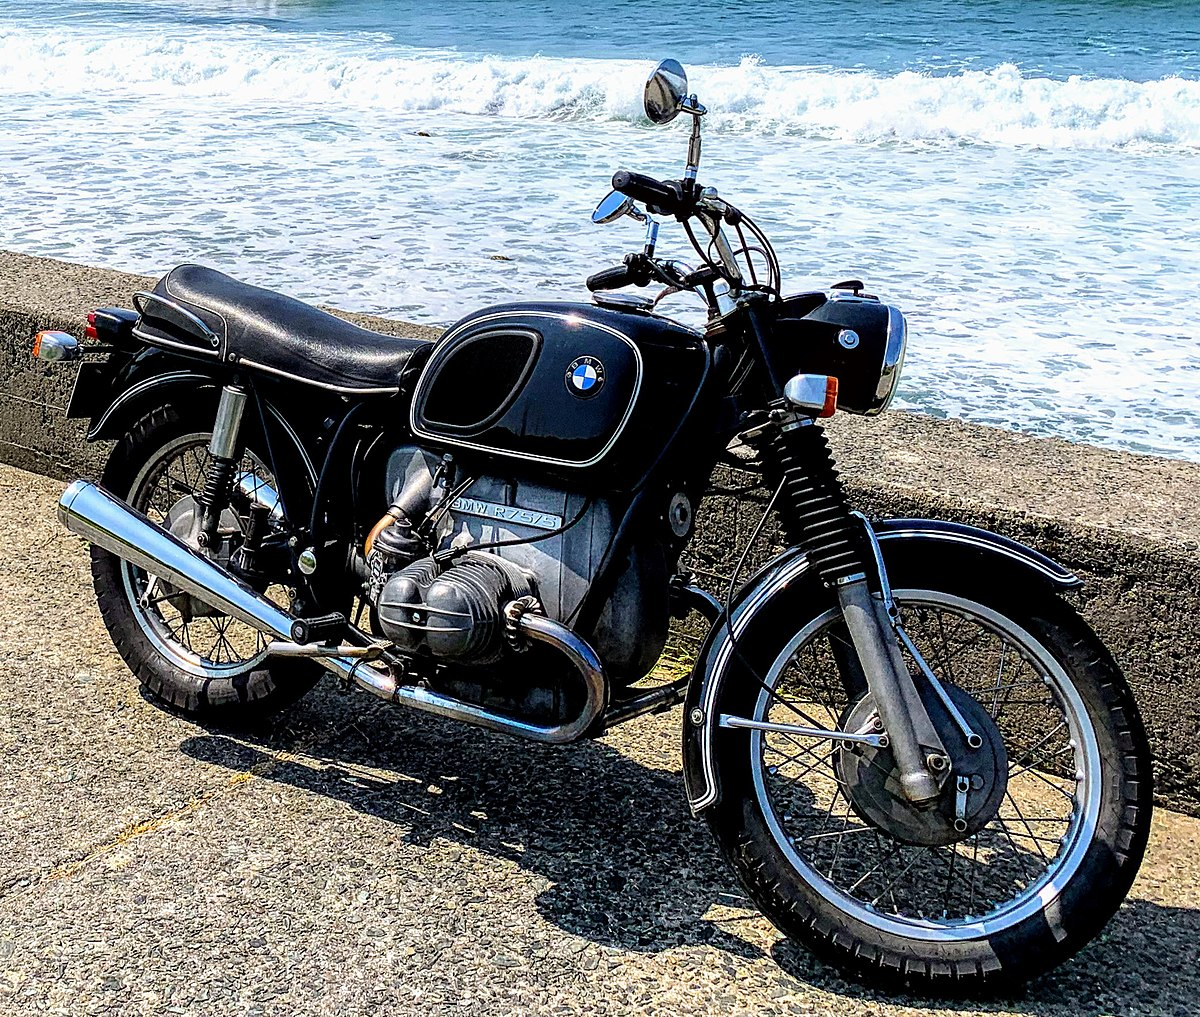 BMW /5 motorcycles - Wikipedia